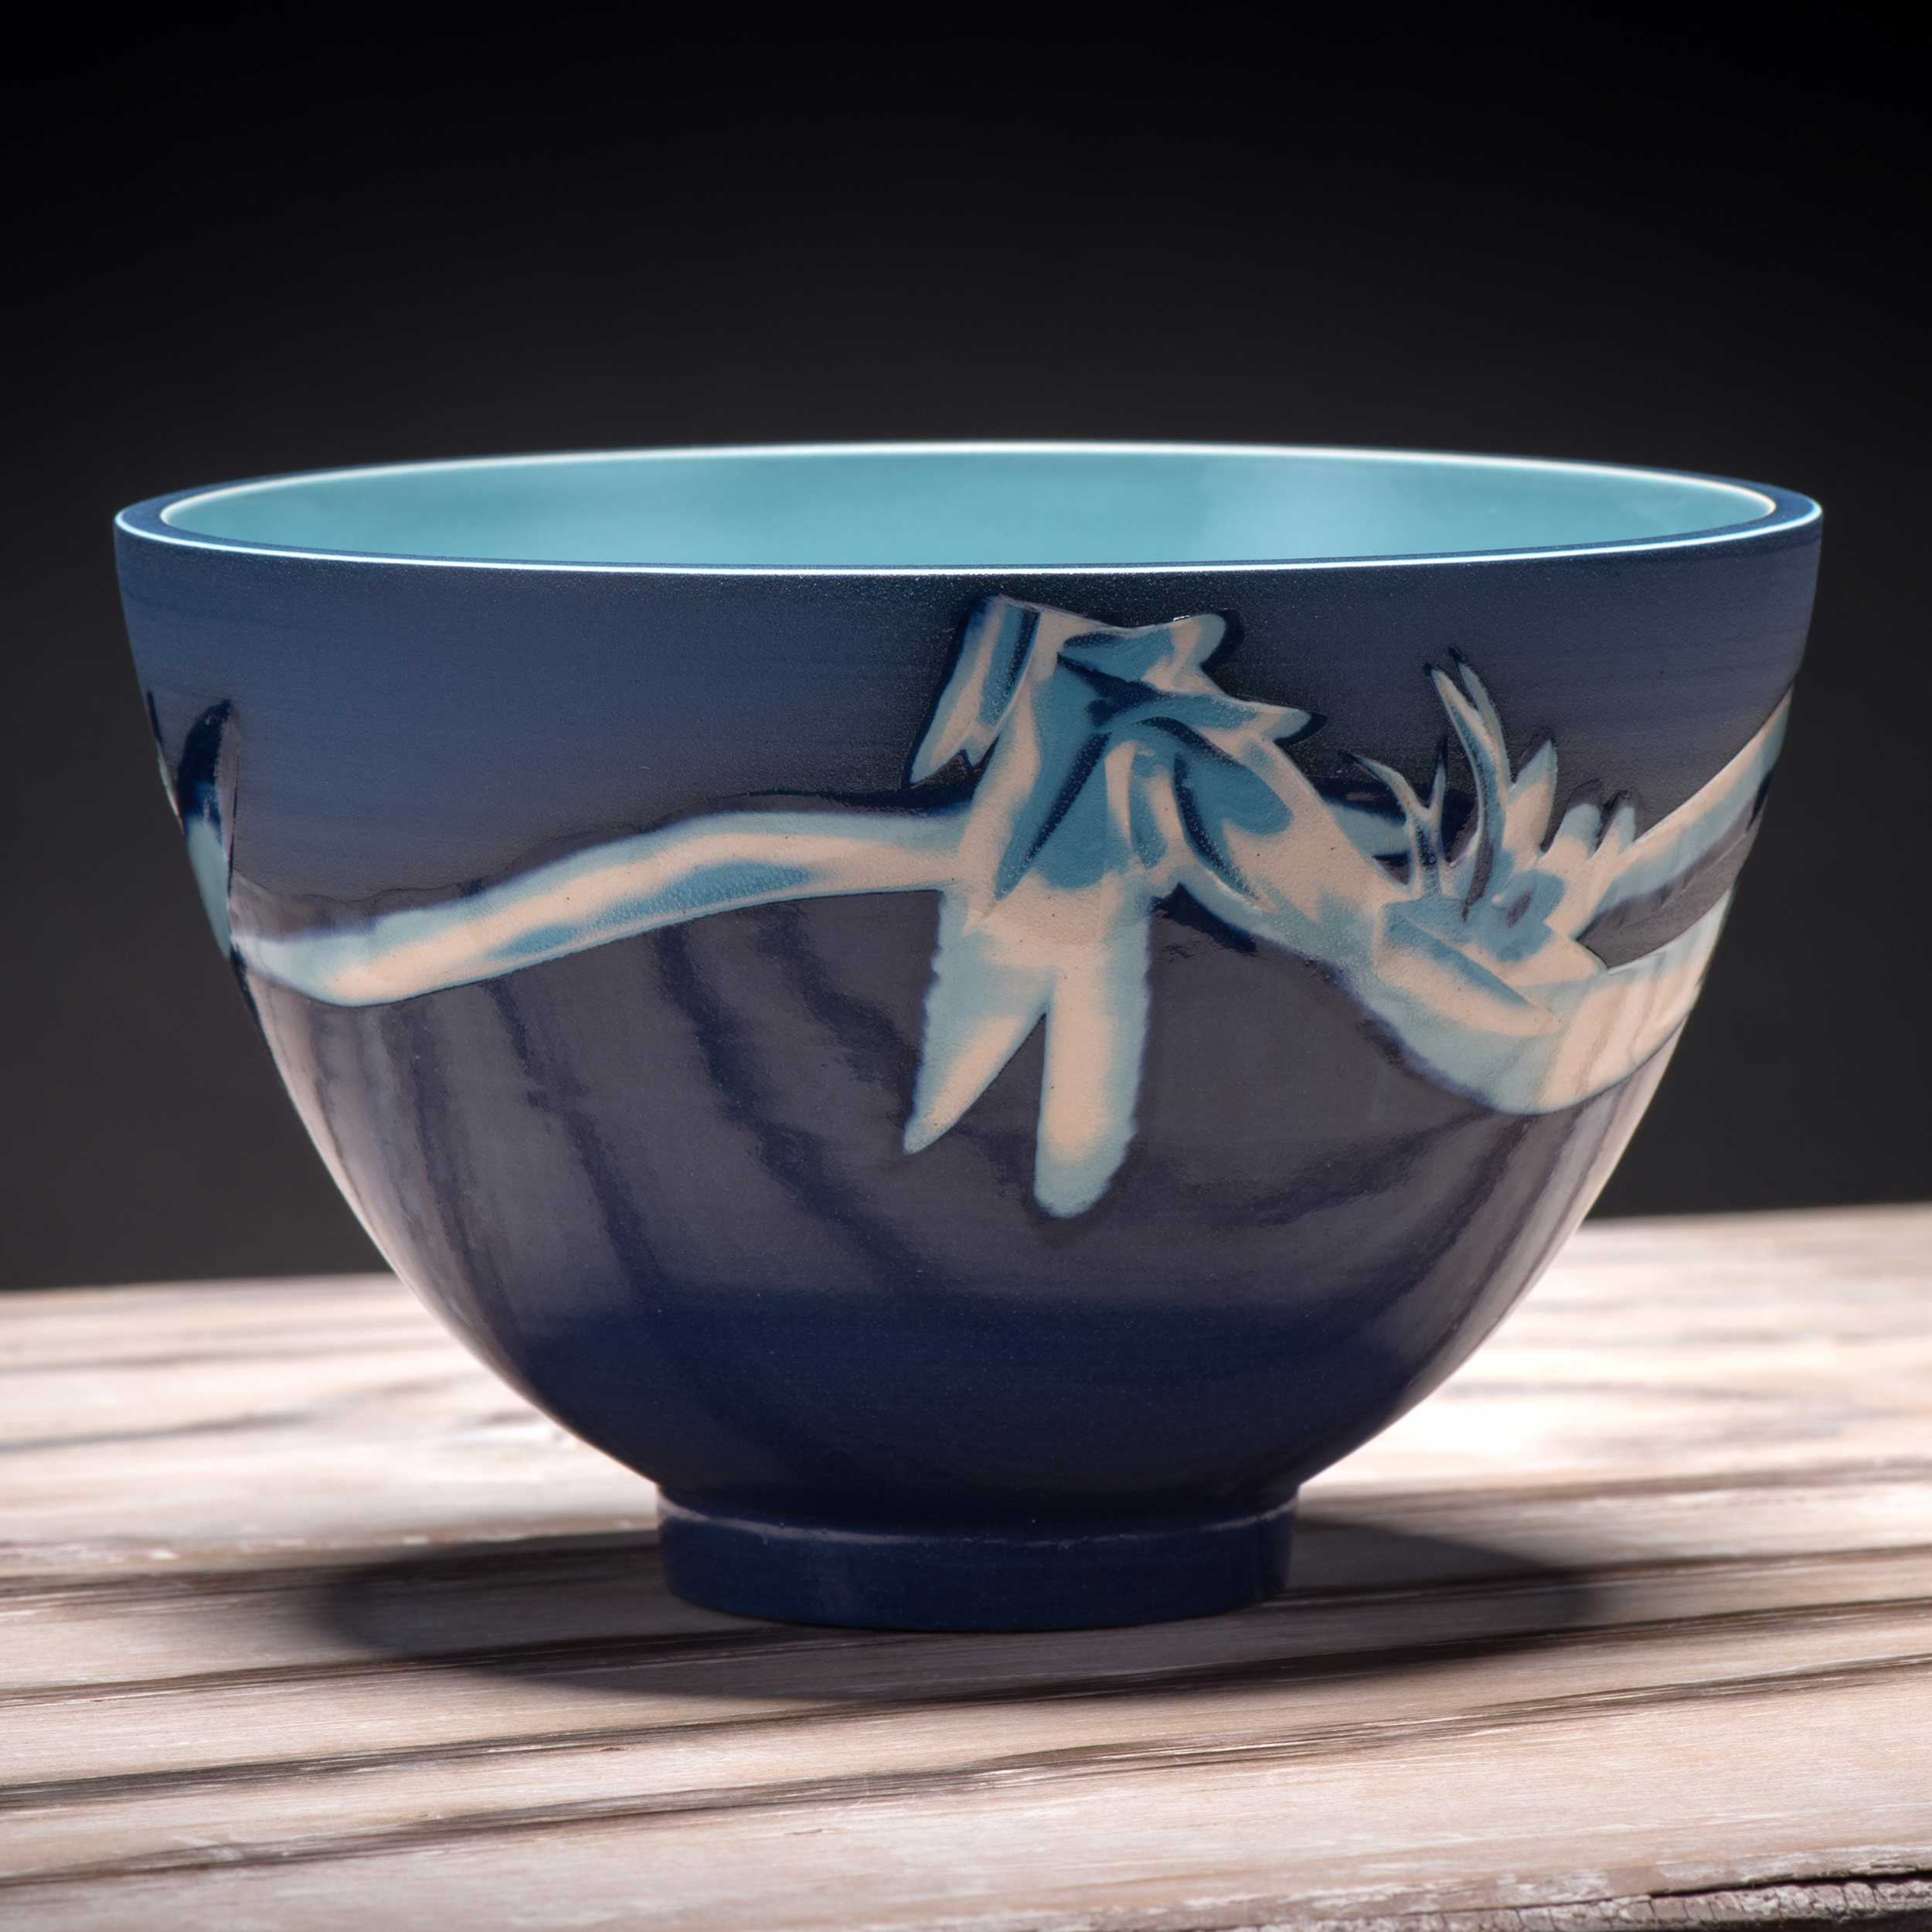 Stormy Sea Art Design Ceramic Bowl by Rowena Gilbert Coast Colle